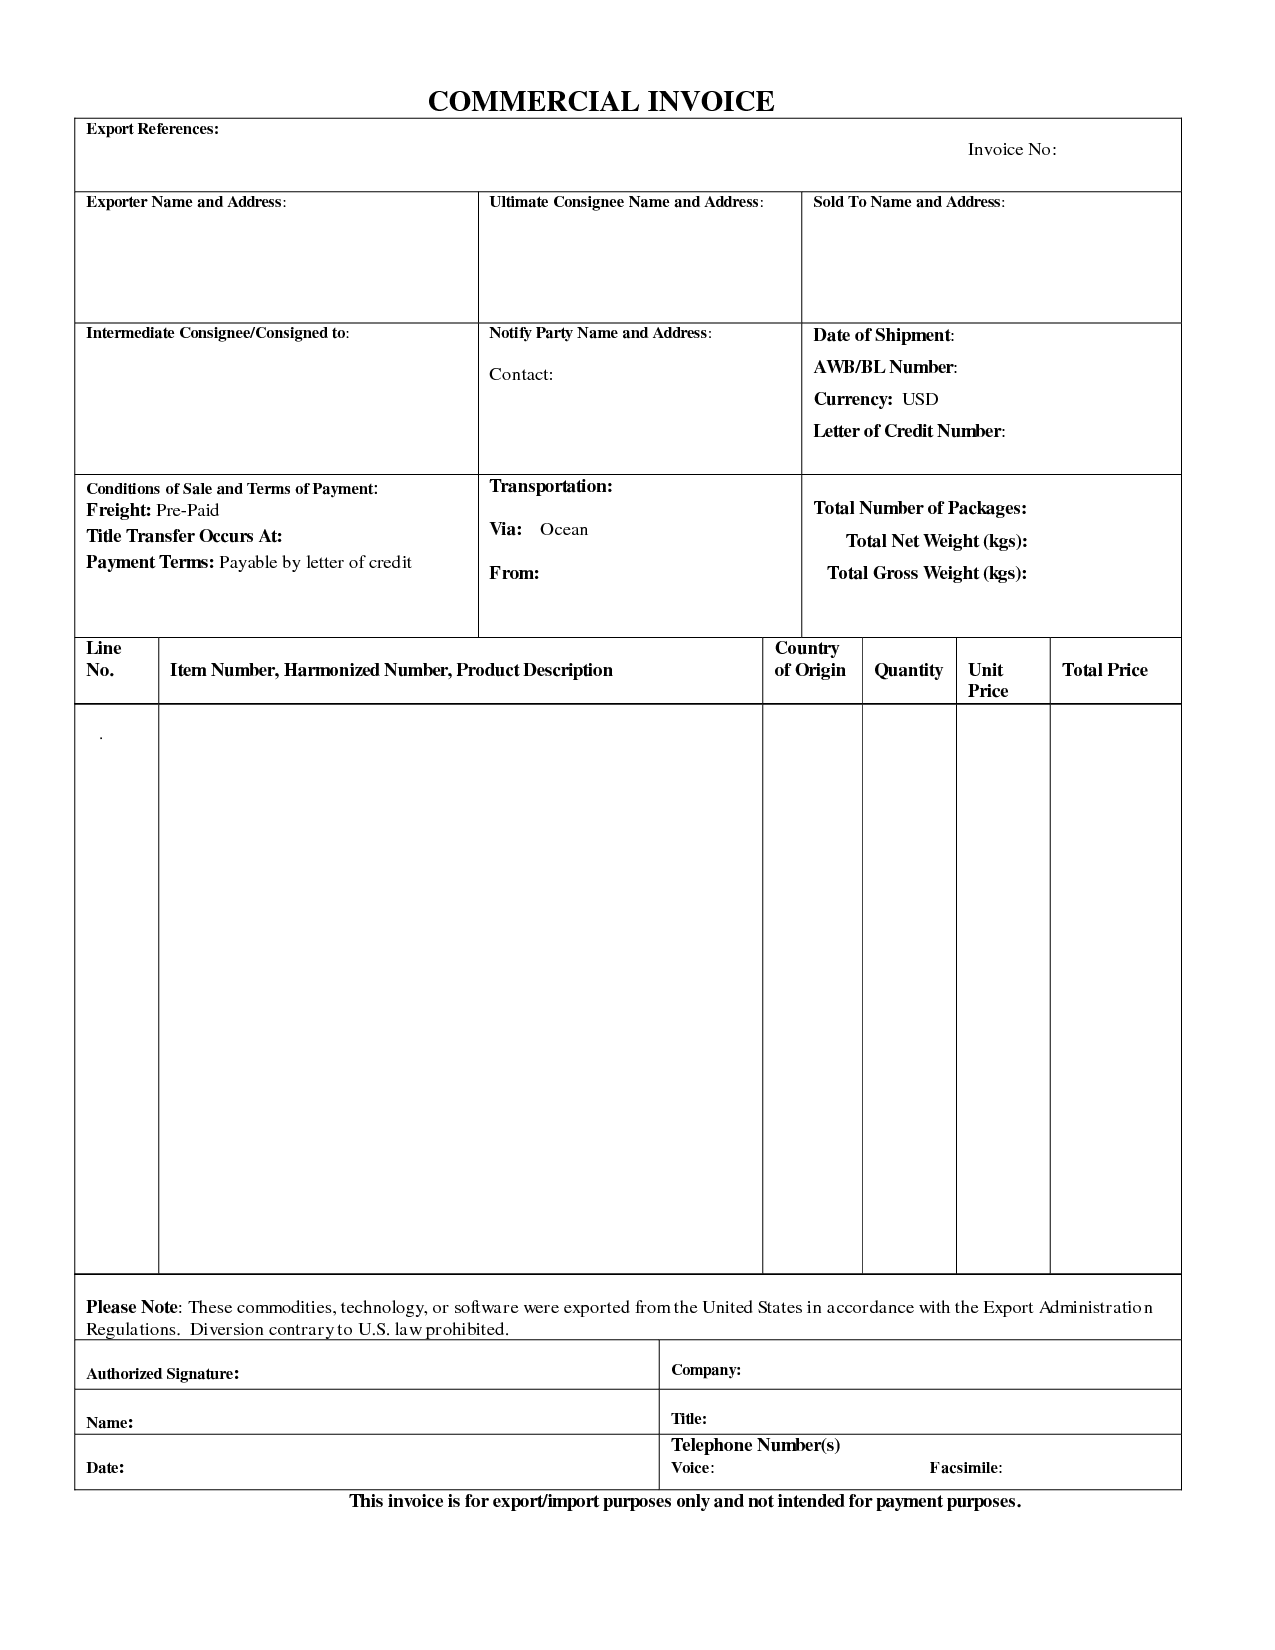 Commercial Export Invoice Sample Business Form Commercial